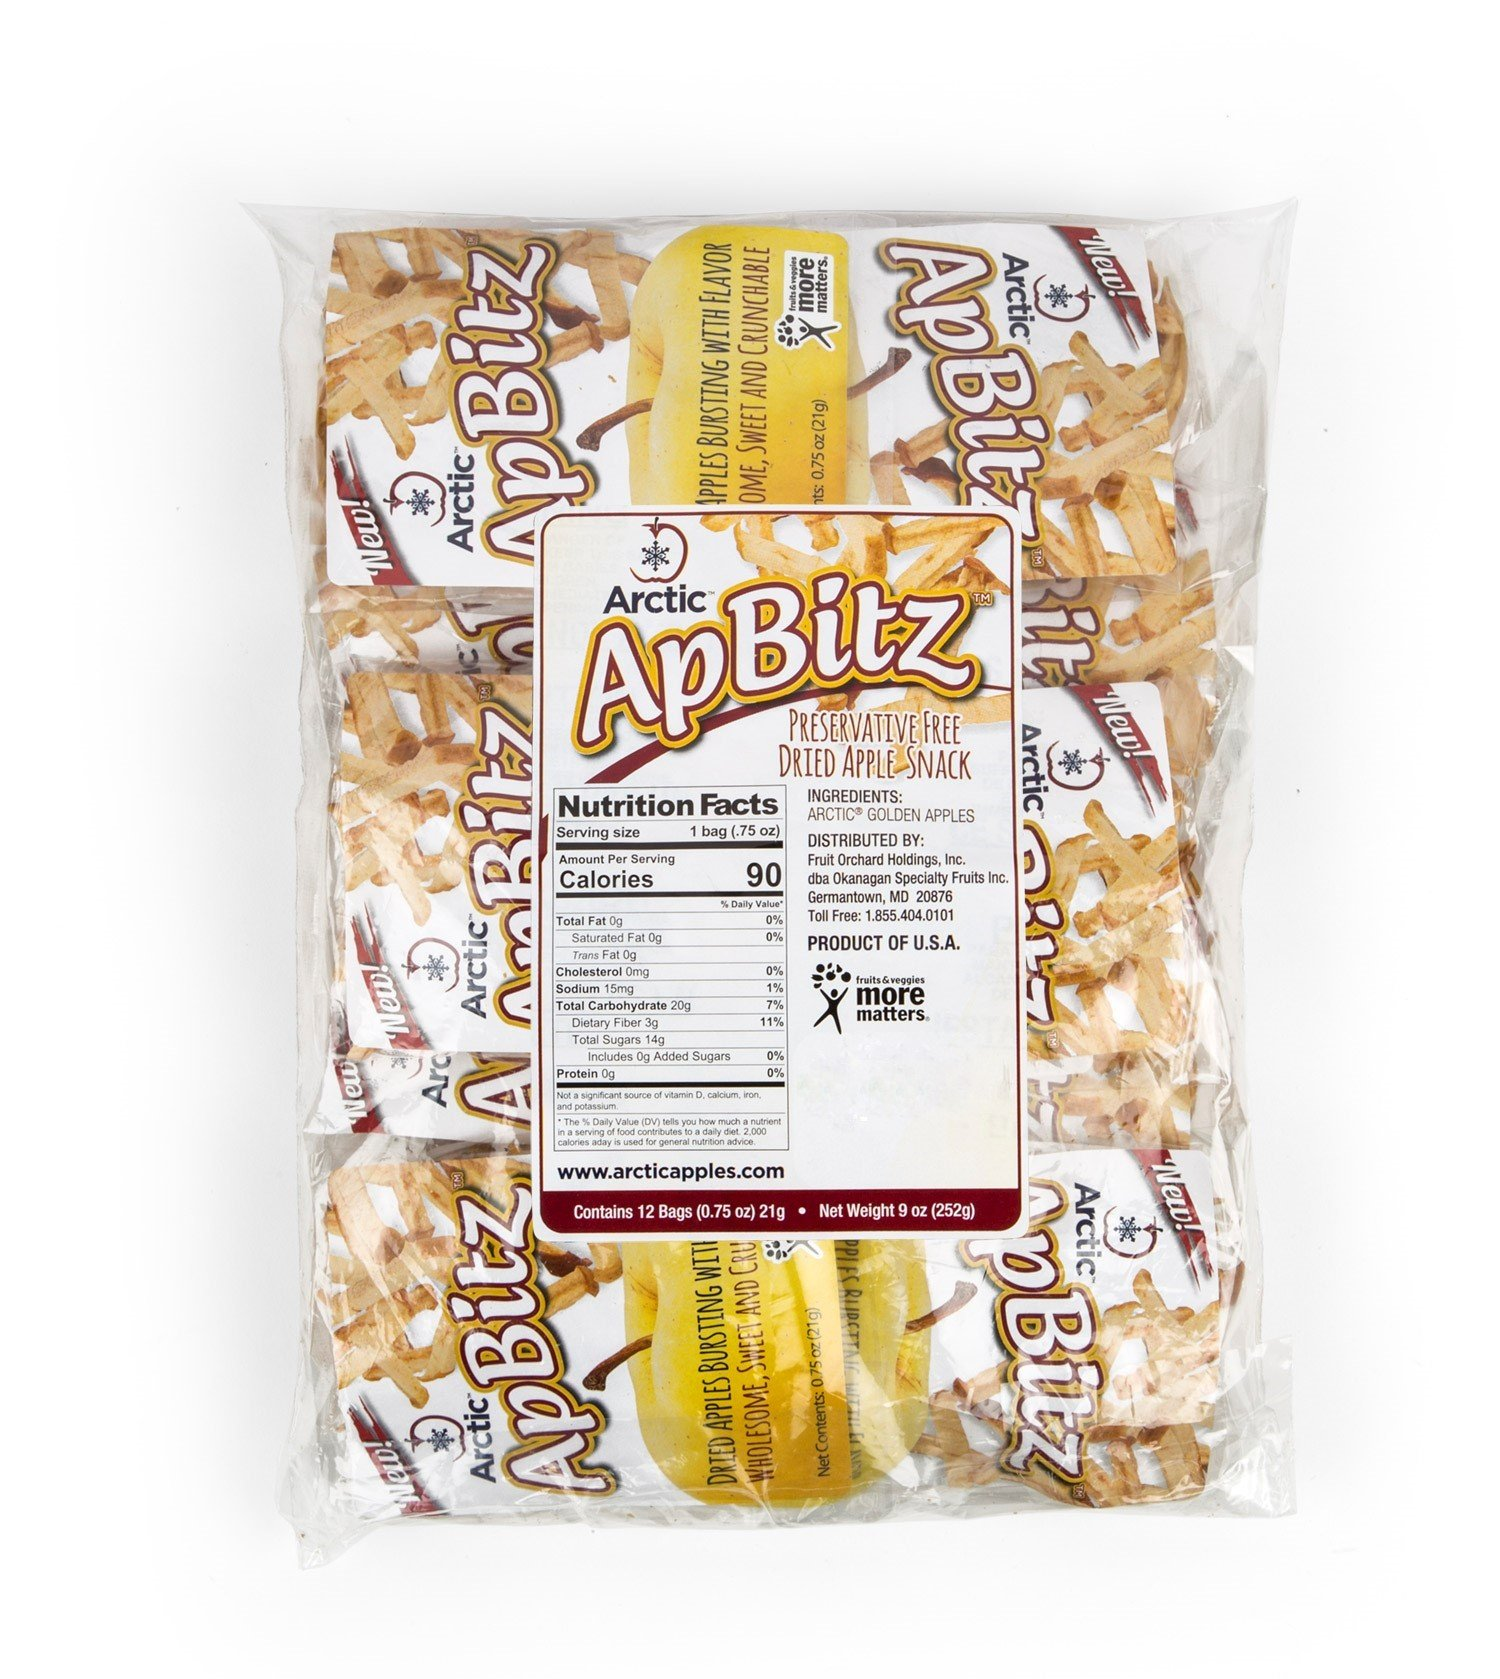 Arctic ApBitz Dried Apple Snacks – 0.75 oz (Pack of 12) – Preservative Free by Arctic® Apples (Image #2)